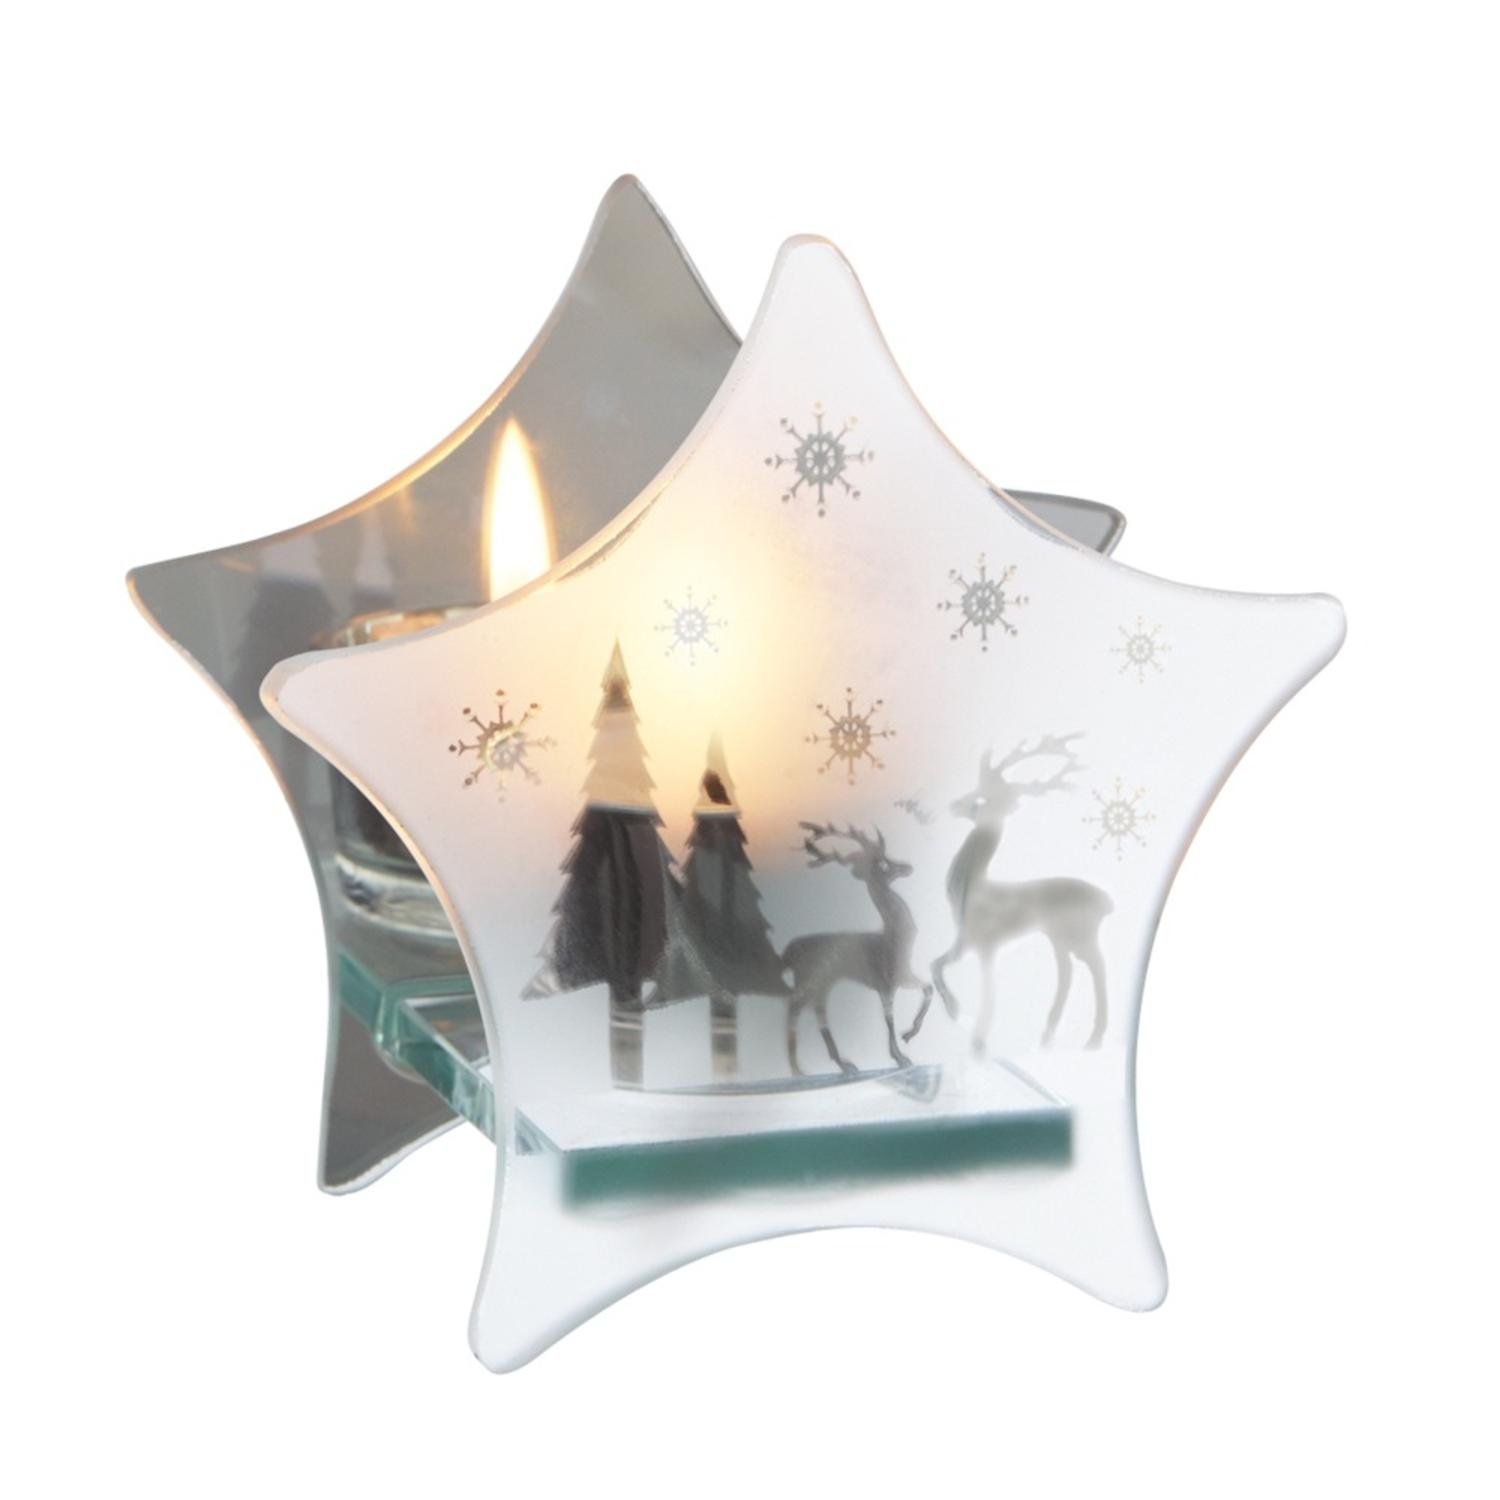 Midwest Gloves 4.25'' Frosted Glass Snowflake & Reindeer Mirrored Star Christmas Tea Light Candle Holder